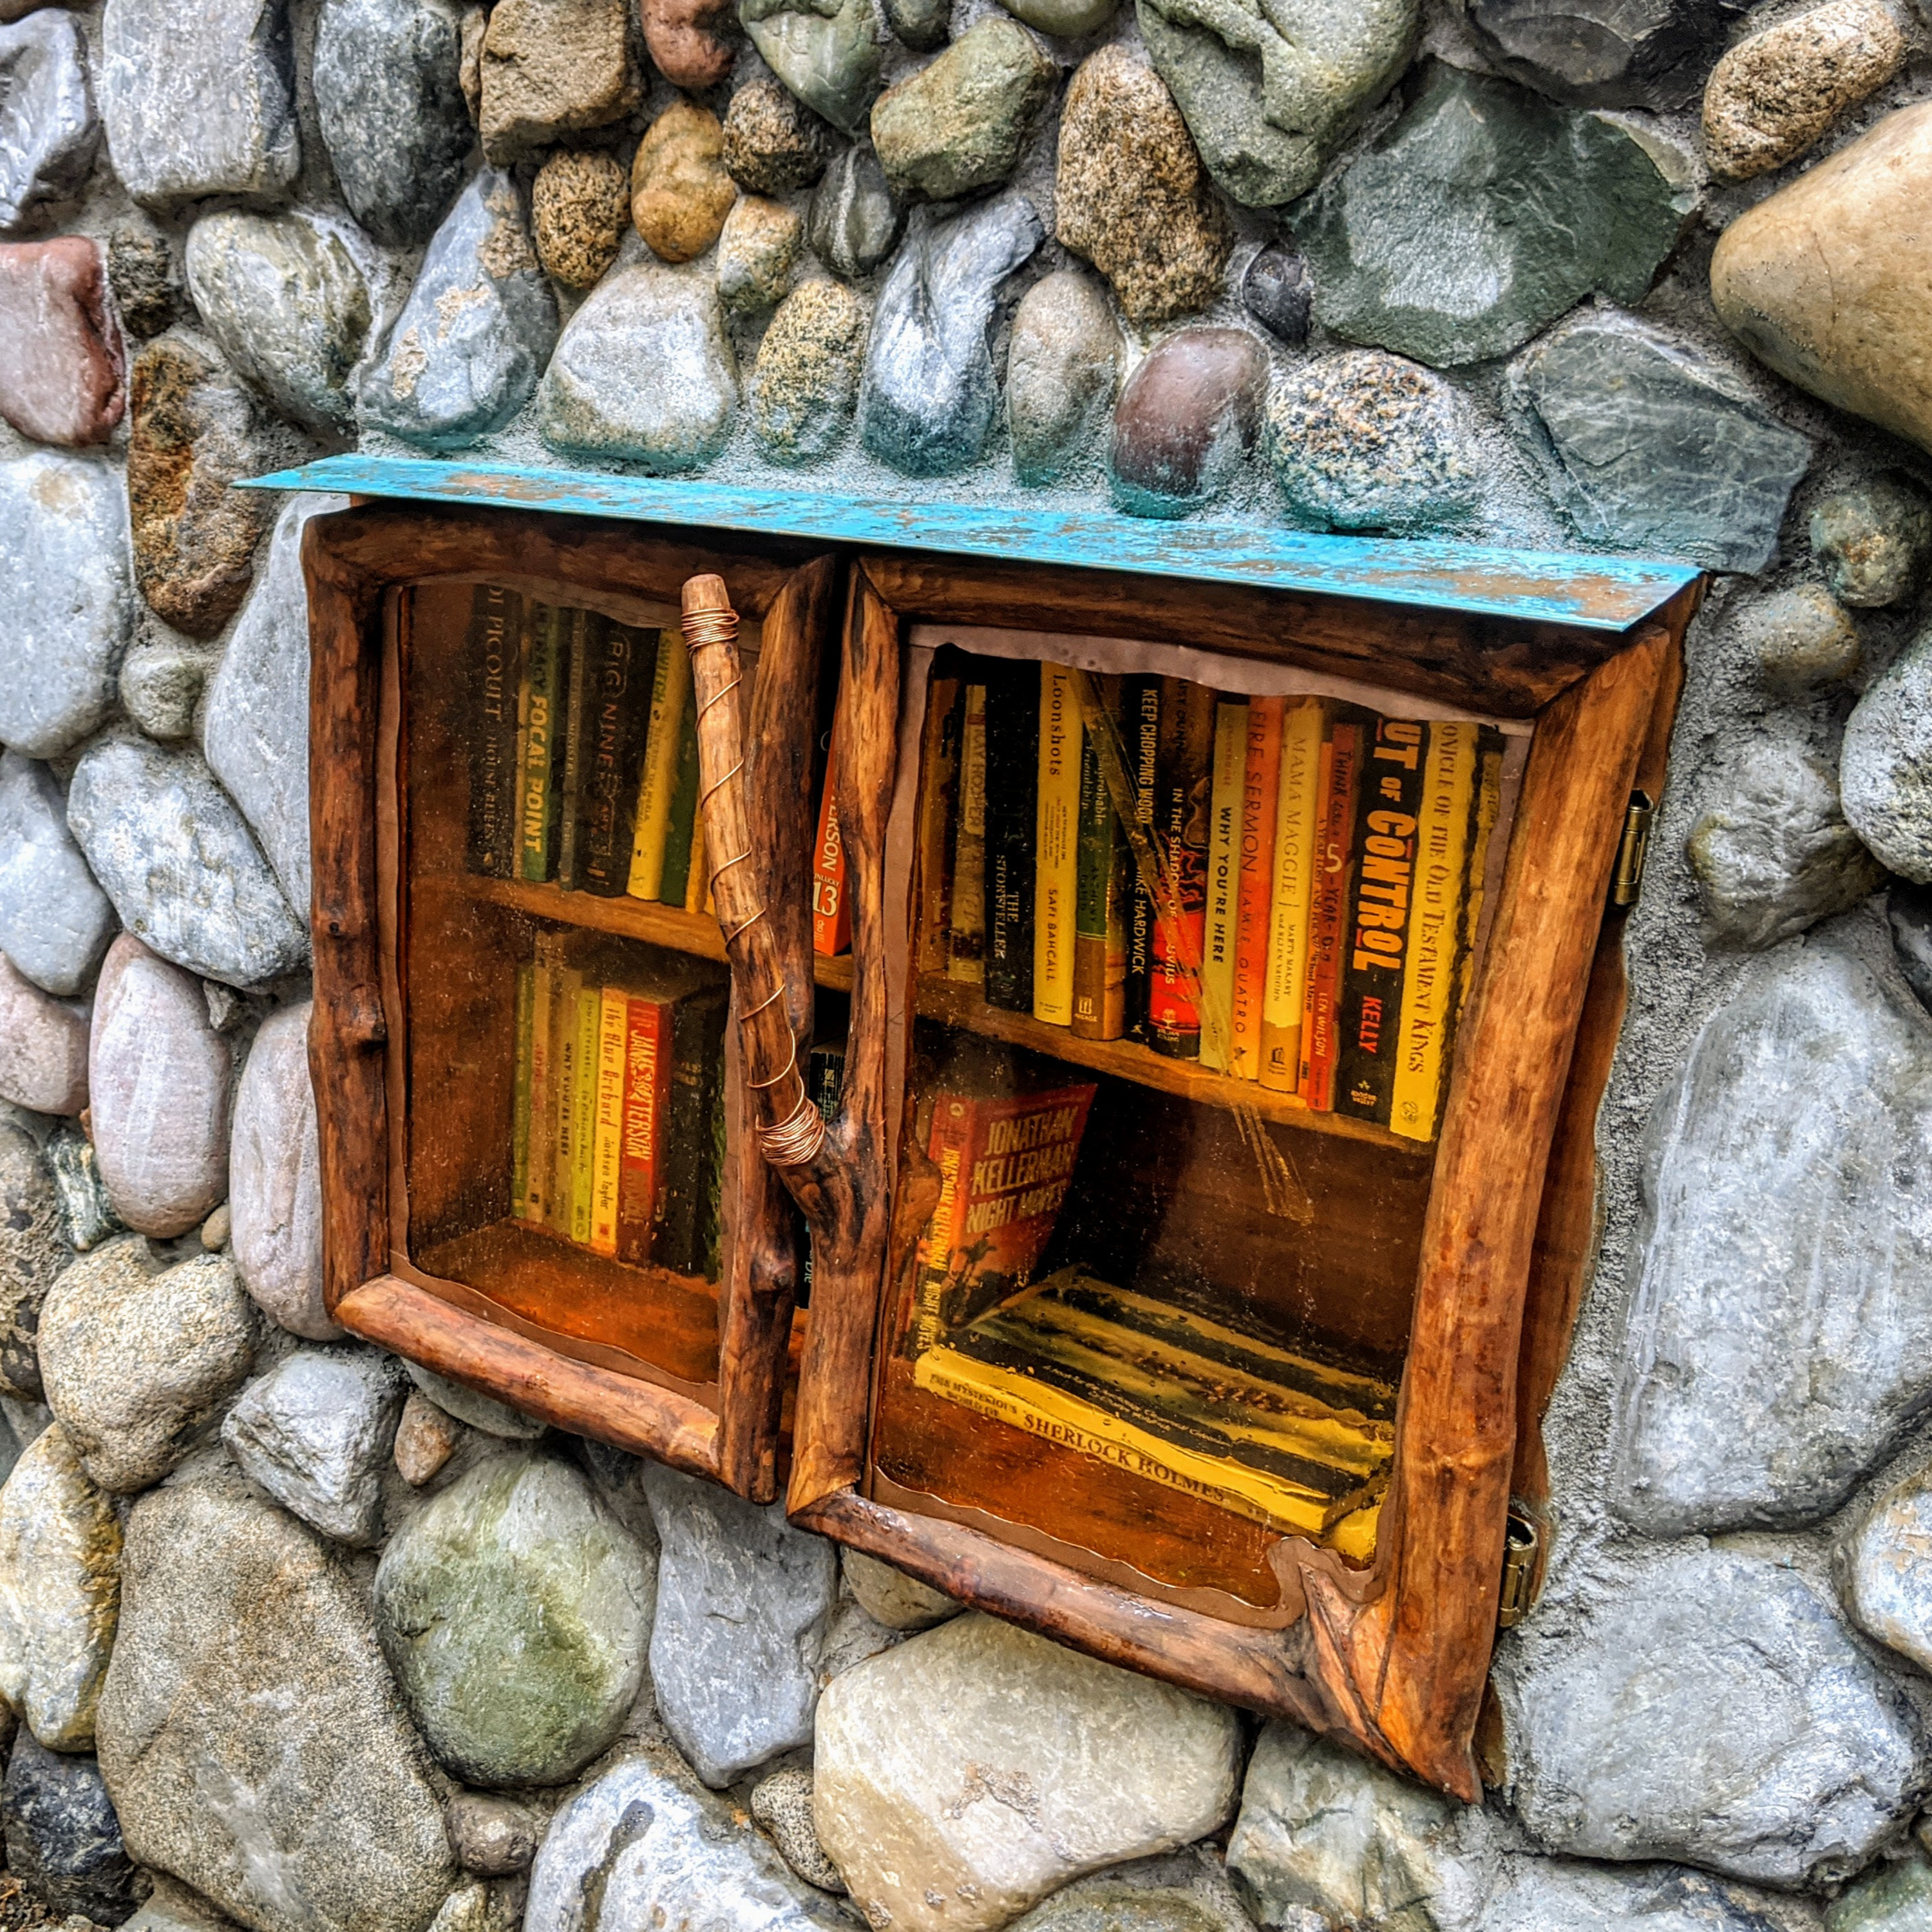 More Confessions Of A Bibliophile: Are You A Vandal?